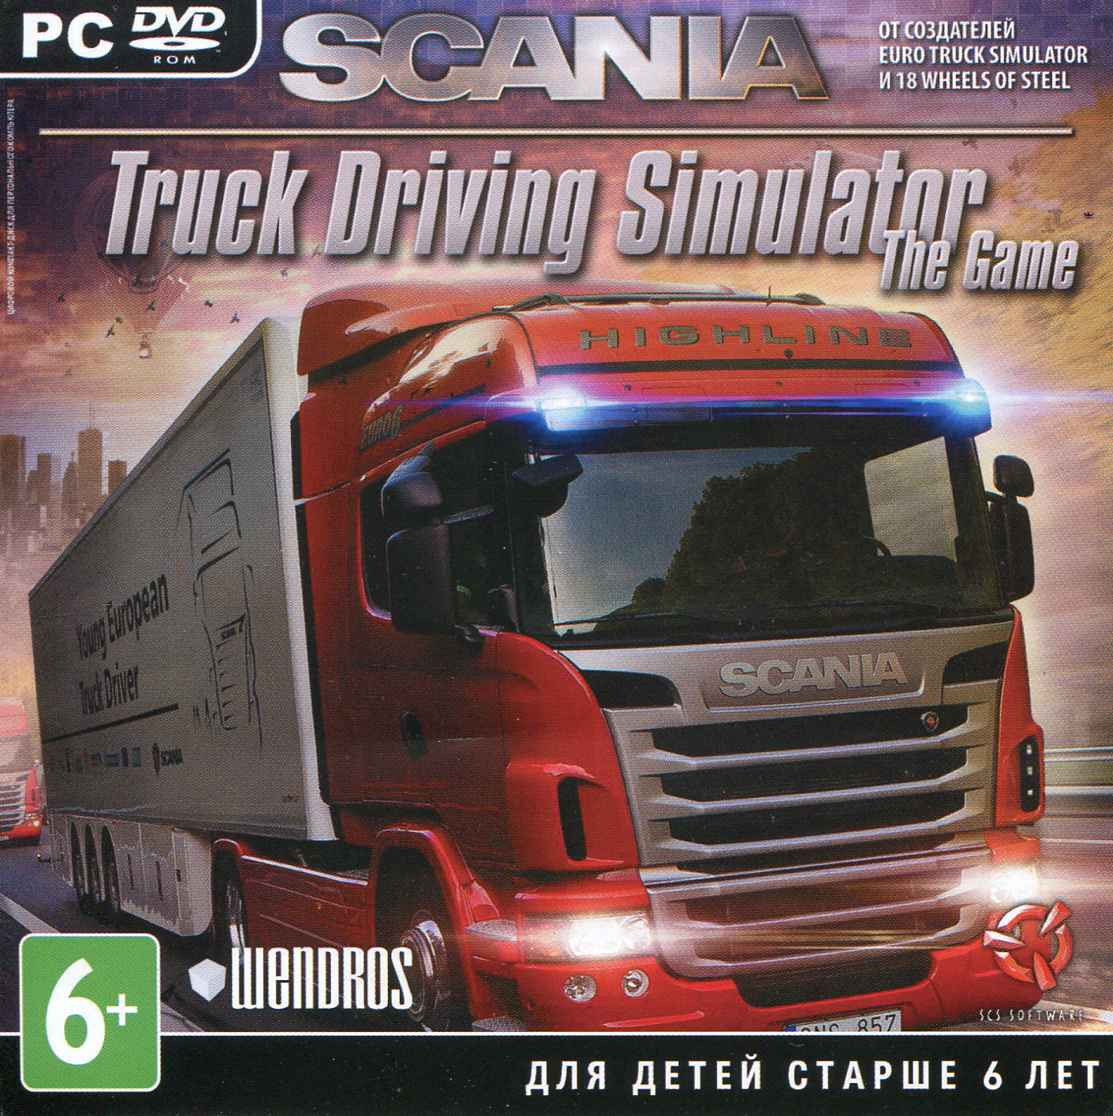 Scania truck driving simulator pc game with activation key.